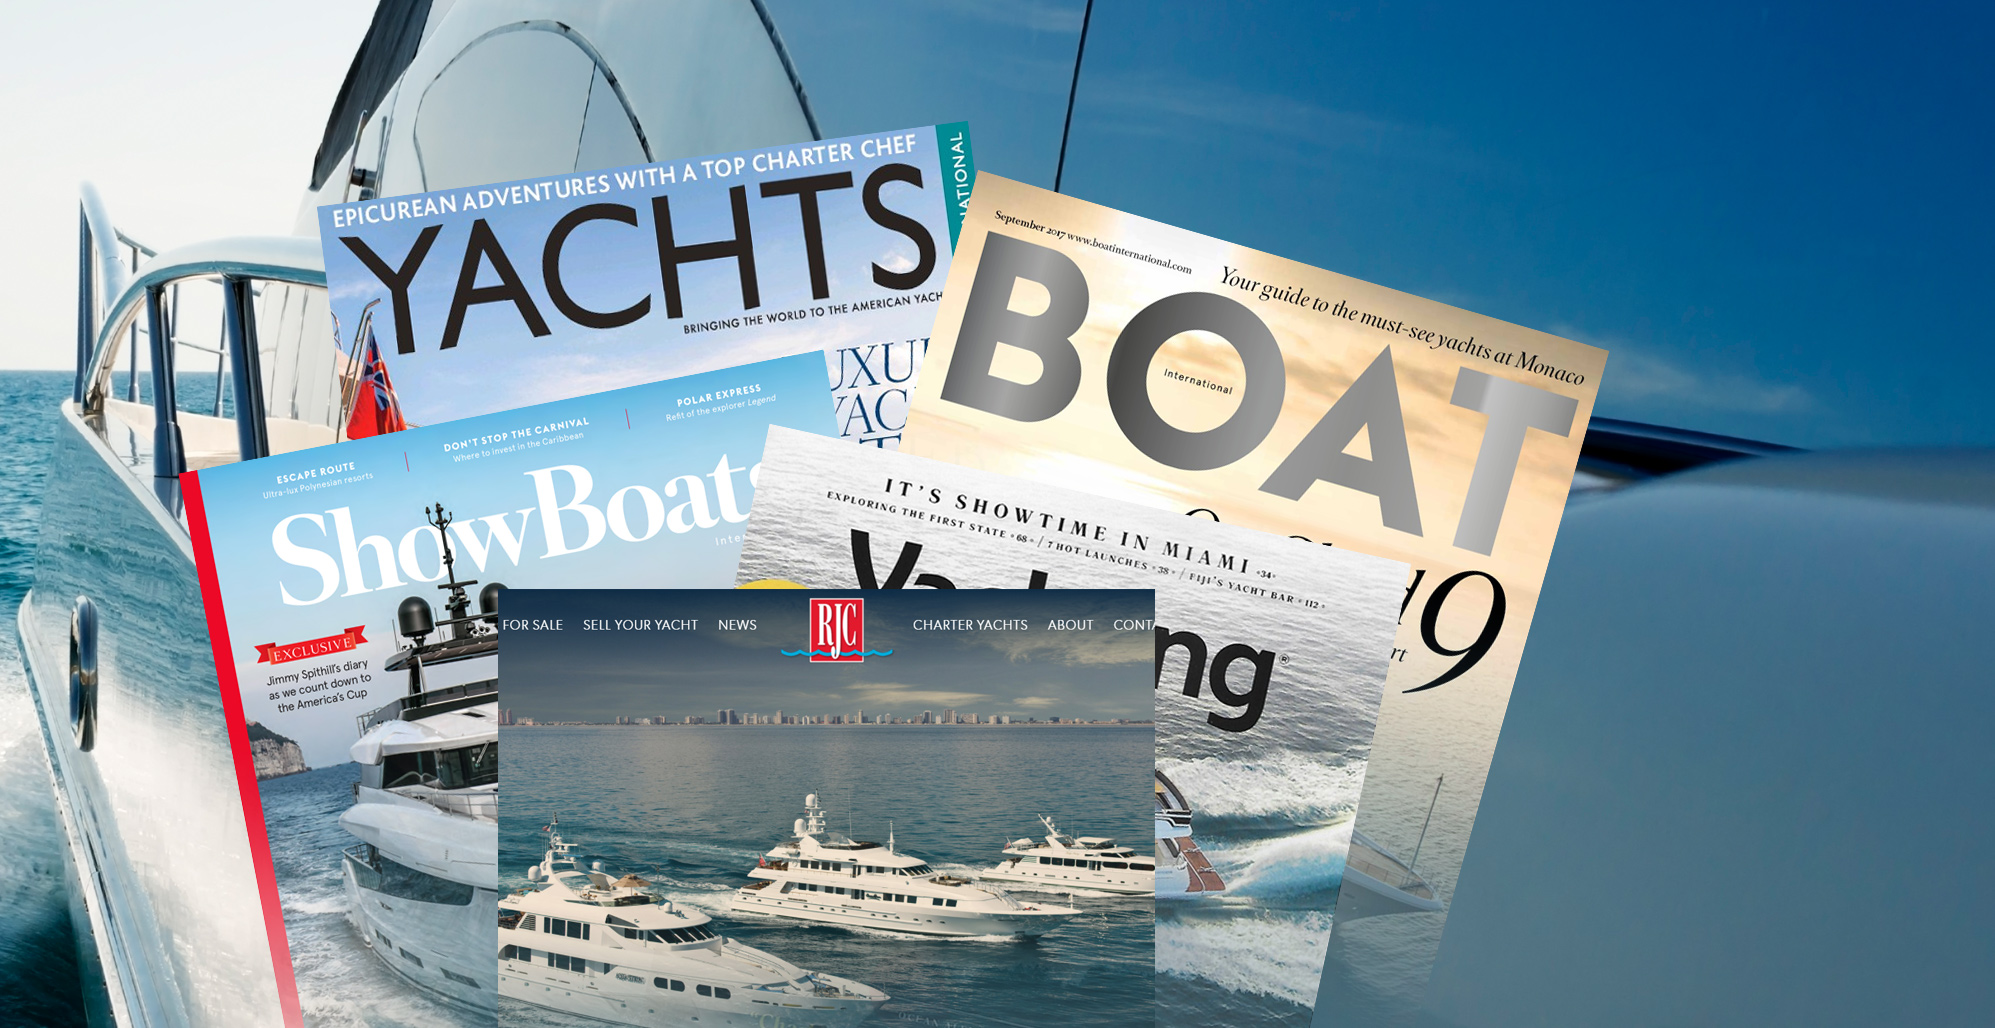 Marketing your Vessel | RJC Yachts